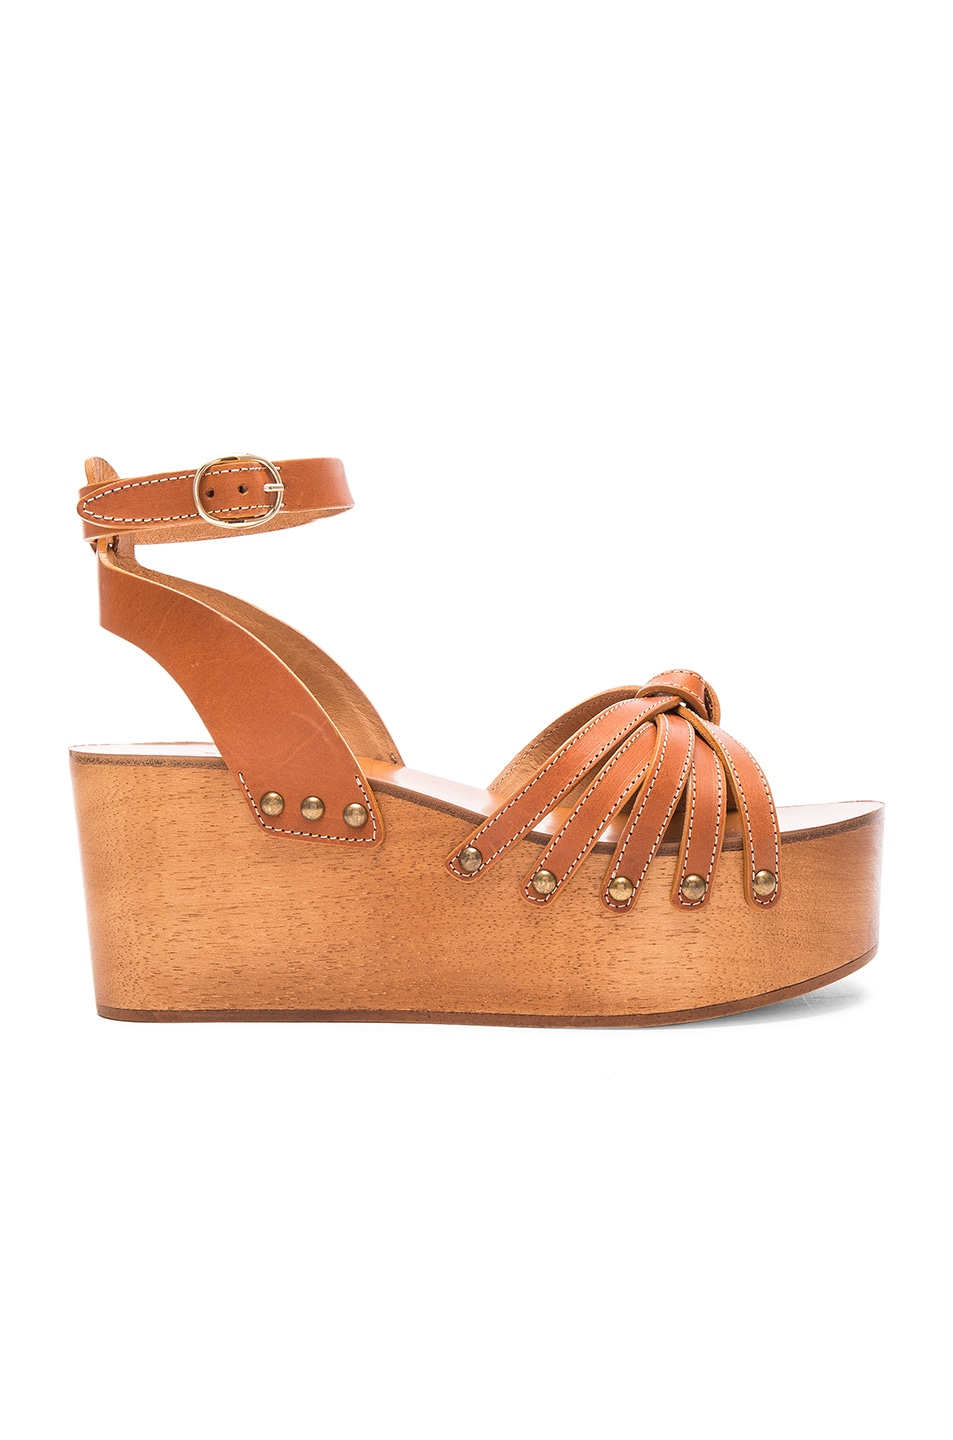 Image 1 of Isabel Marant Etoile Zia Leather Wedge Sandals in Tan